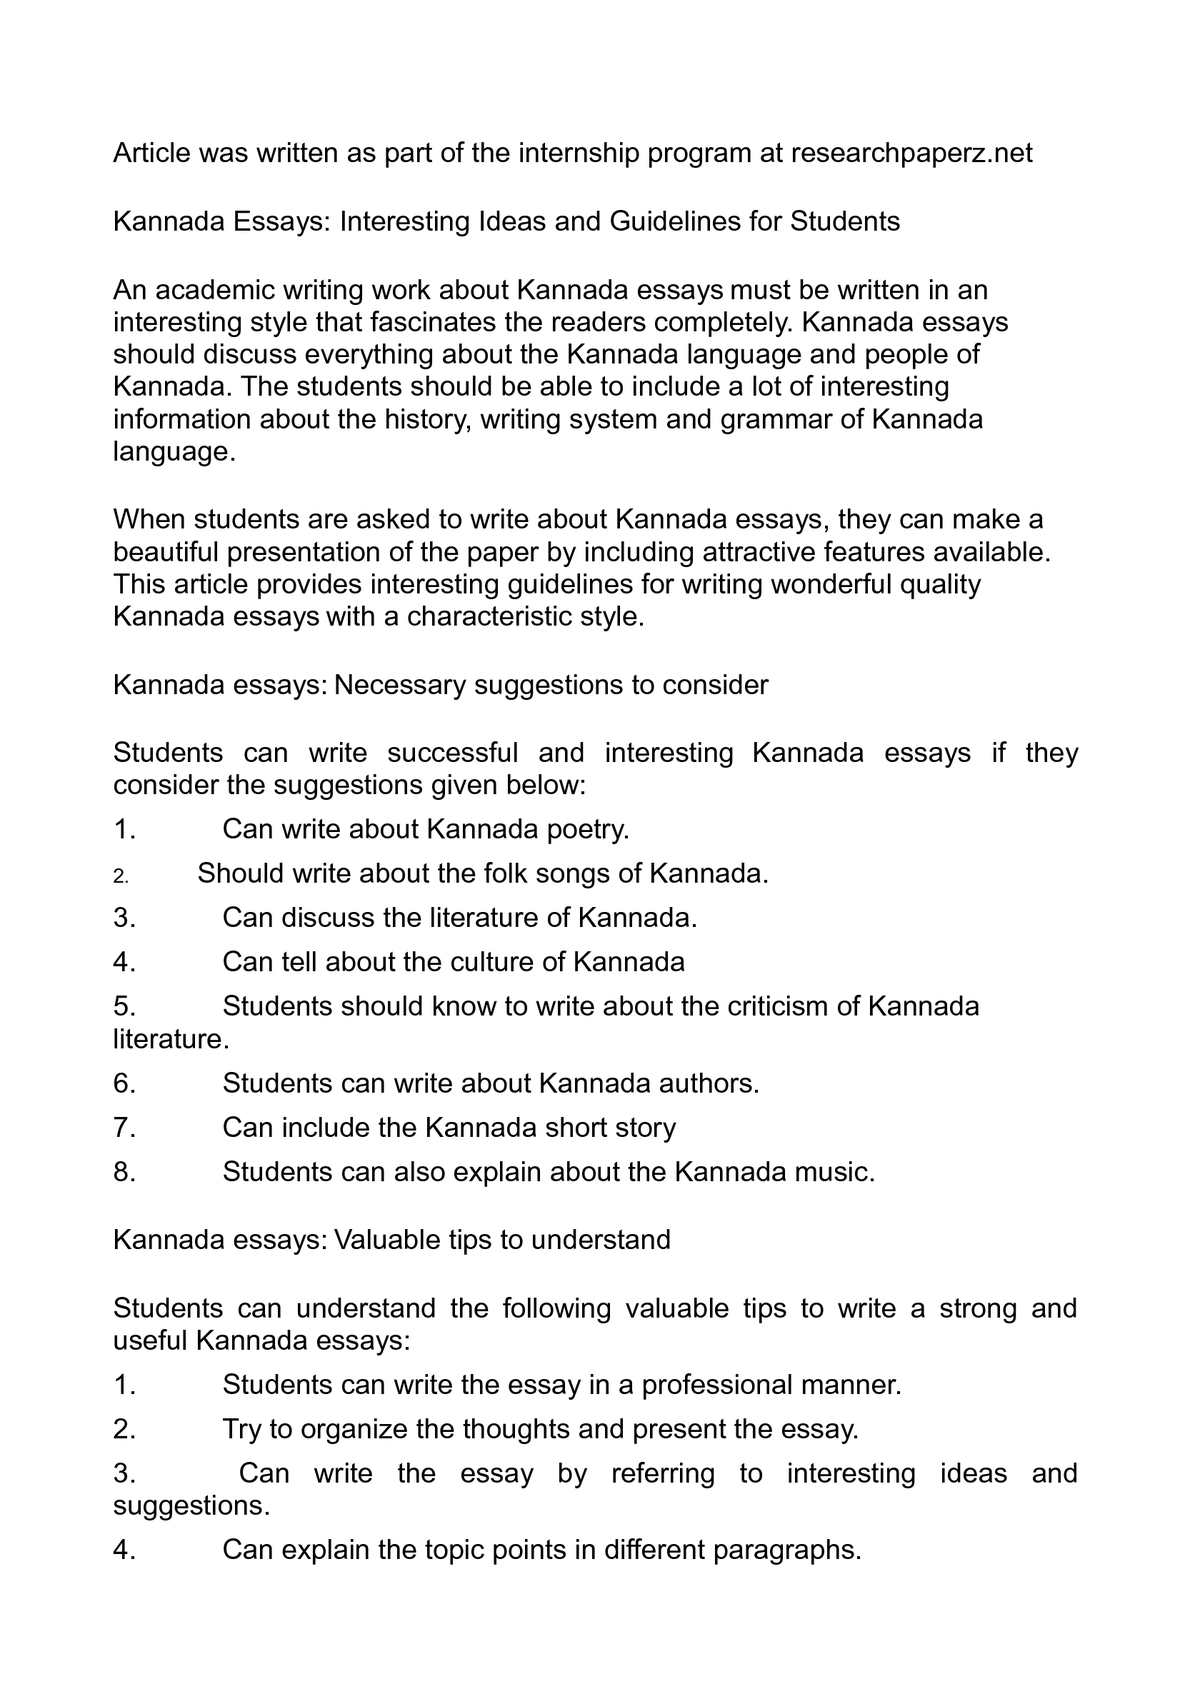 010 Essay Example Short My Home Writing Picture Resu Ideal Hometown Spm Work From Sweet Charity Begins Shocking Questions In General Surgery Outline Examples About Love Full